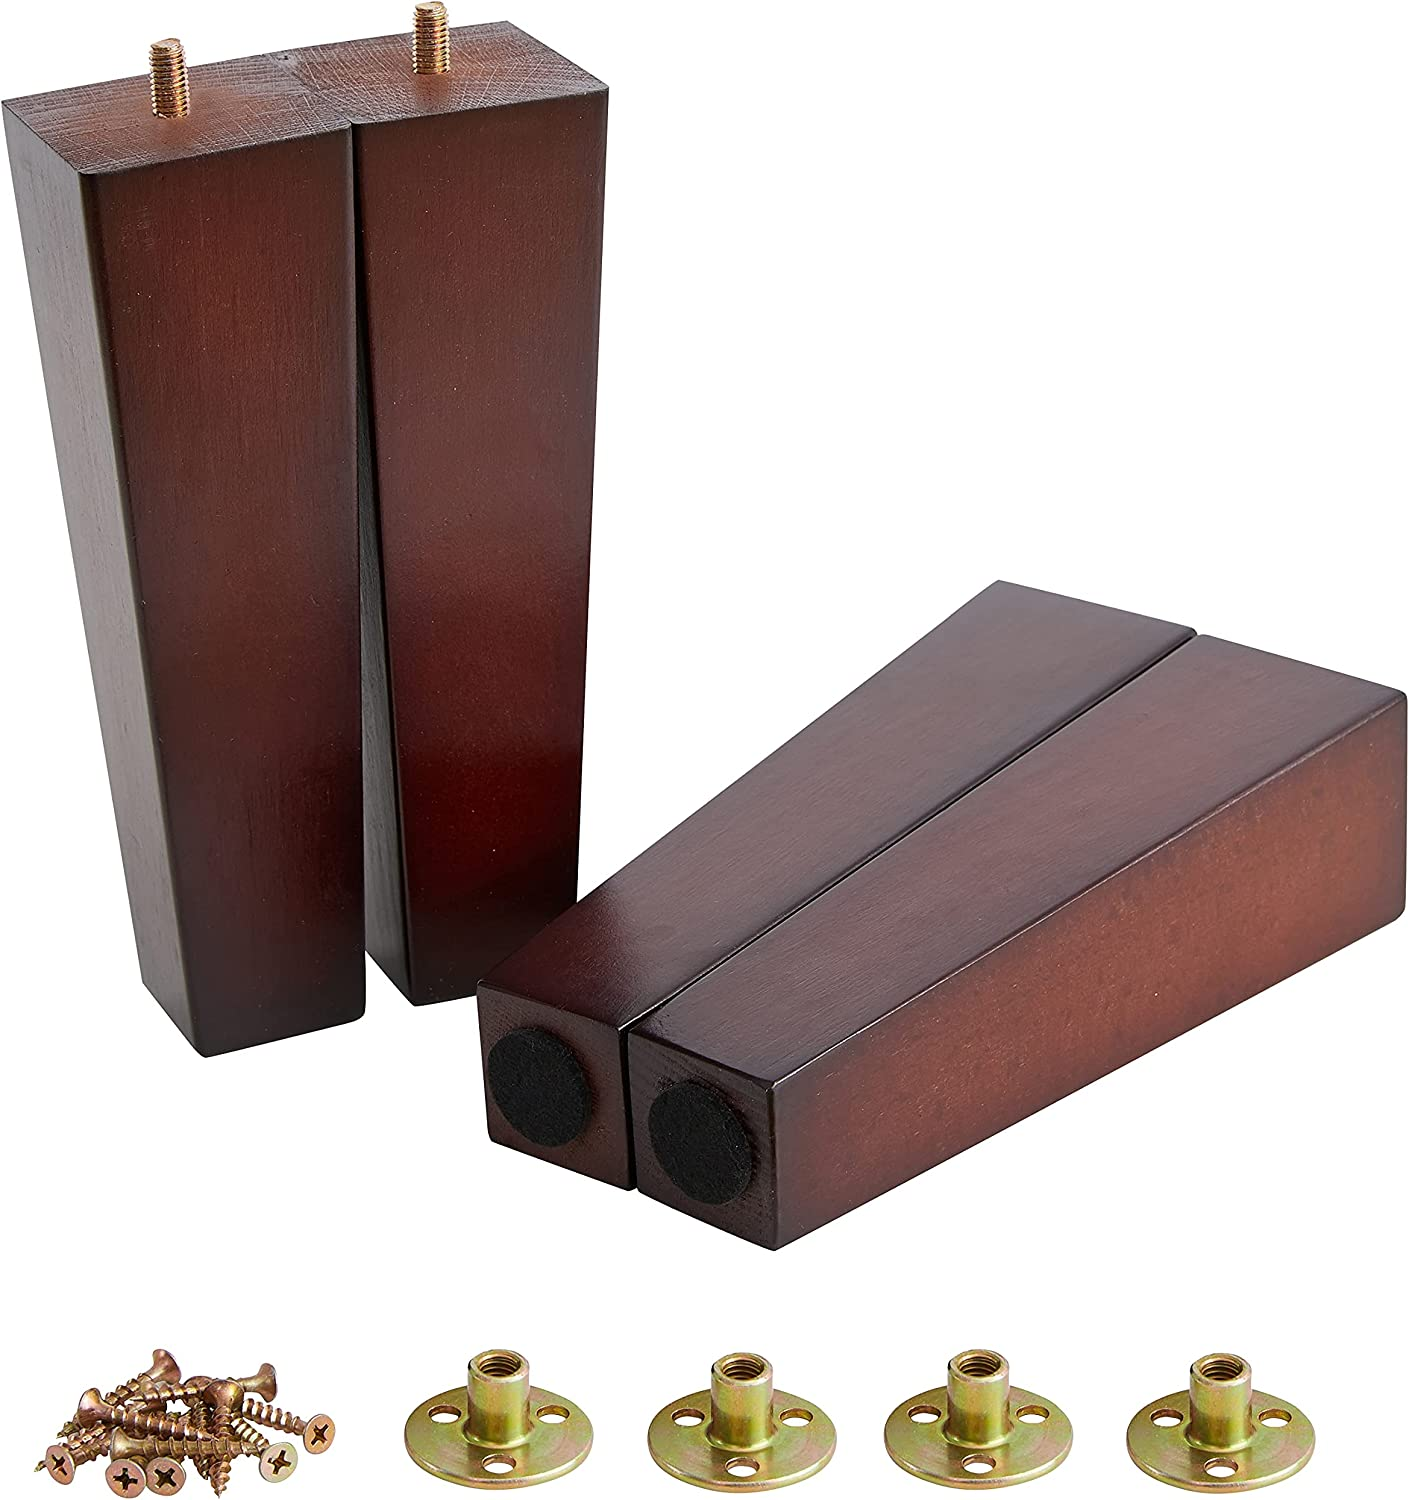 Ornavo Home Set of 4 Square Mid-Century Modern Brown 8 Inch Wood Furniture Legs Replacement for Sofa, Couch, Armchair, Recliner, Coffee Table & Dresser